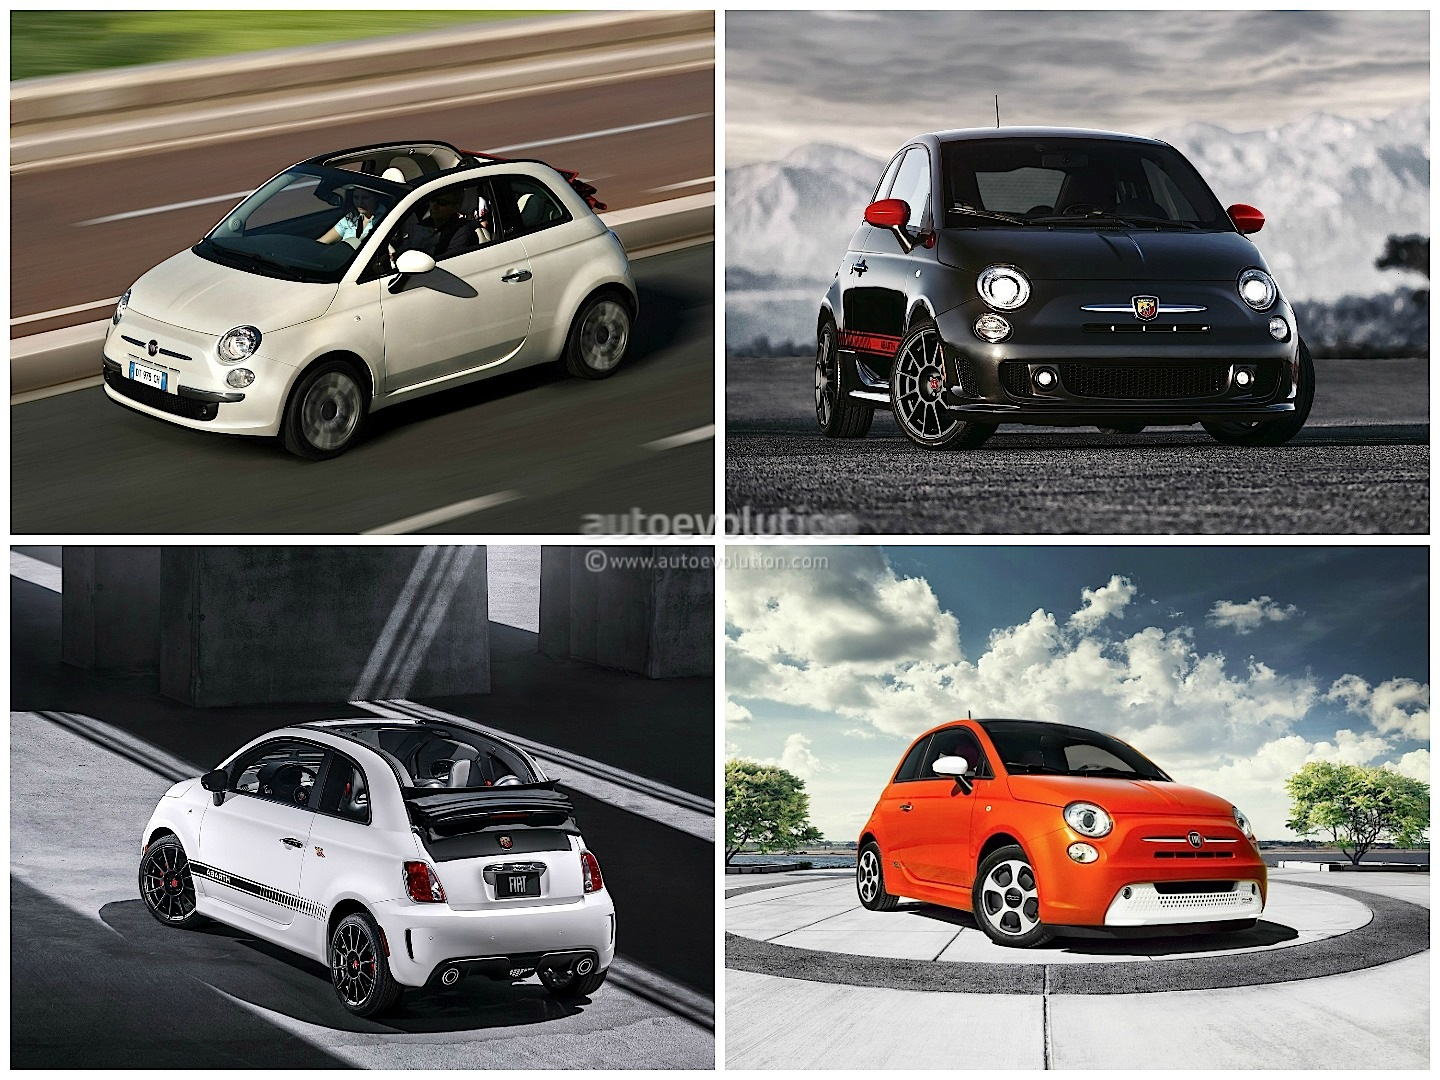 fiat 500x vs 500l vs 500: italian family comparison - autoevolution